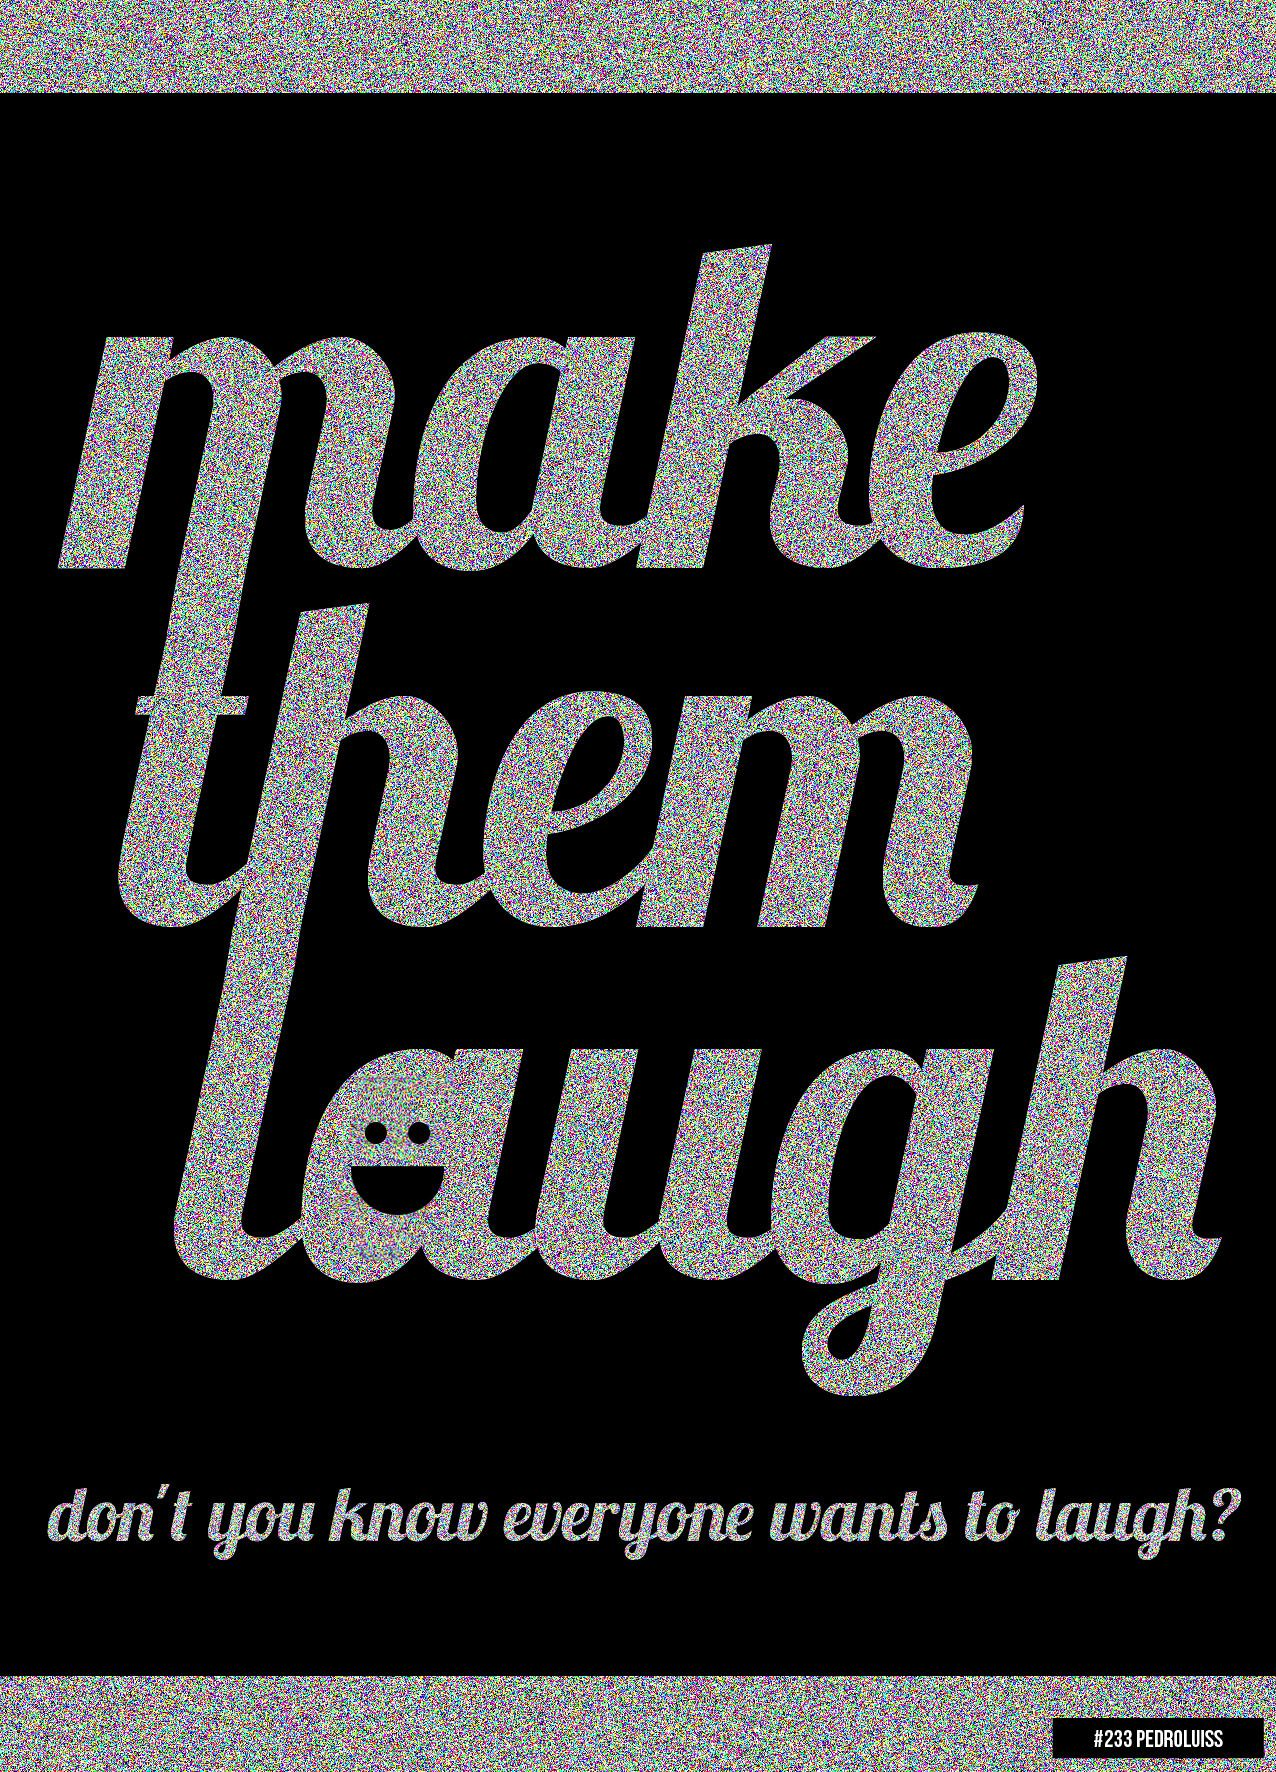 233 make them laugh typography quotes laugh words